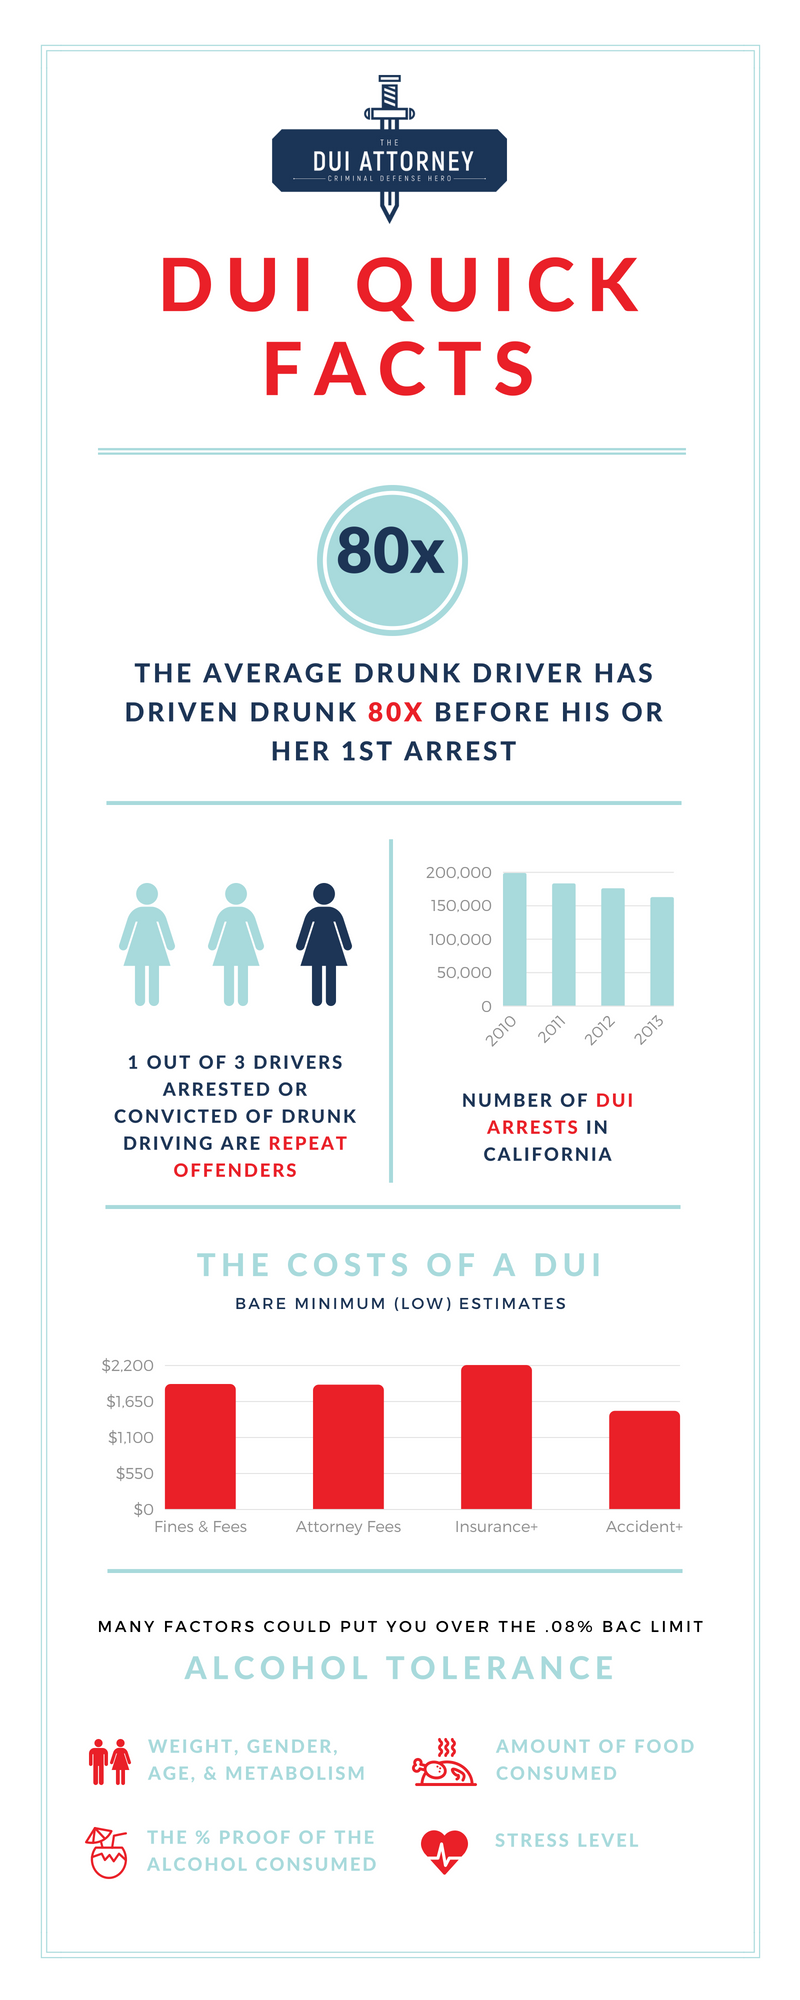 DUI (driving under the influence) drinking and driving quick facts infographic